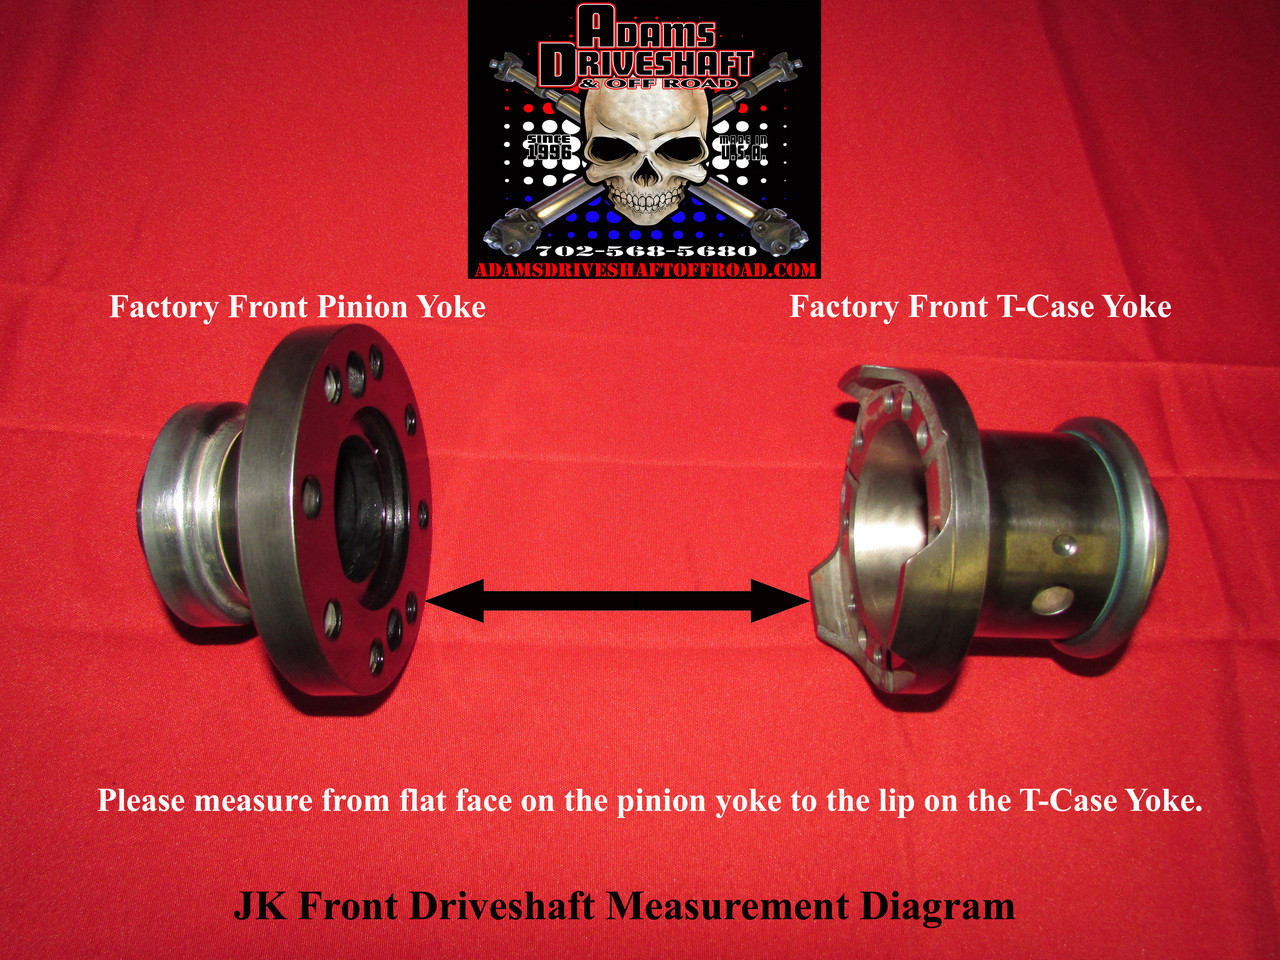 Front Driveshaft Measurement Required